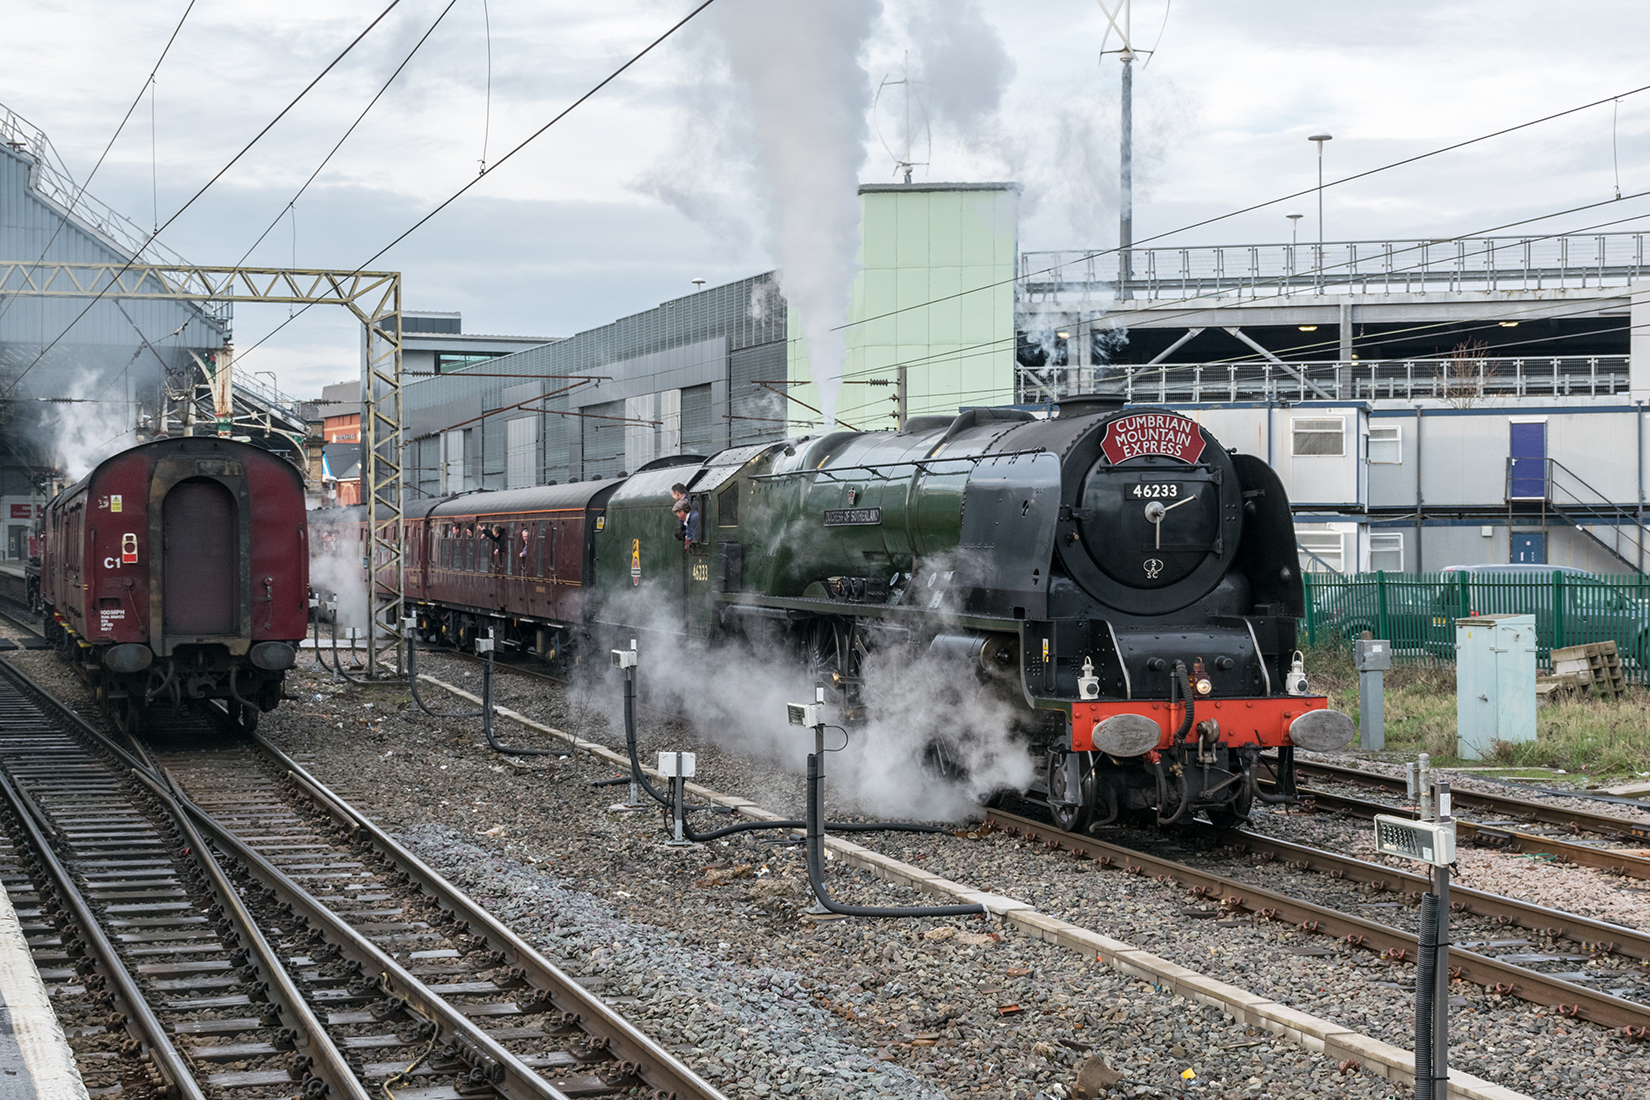 'Duchess of Sutherland' at Preston station is passed by Jubilee 'Galatea'